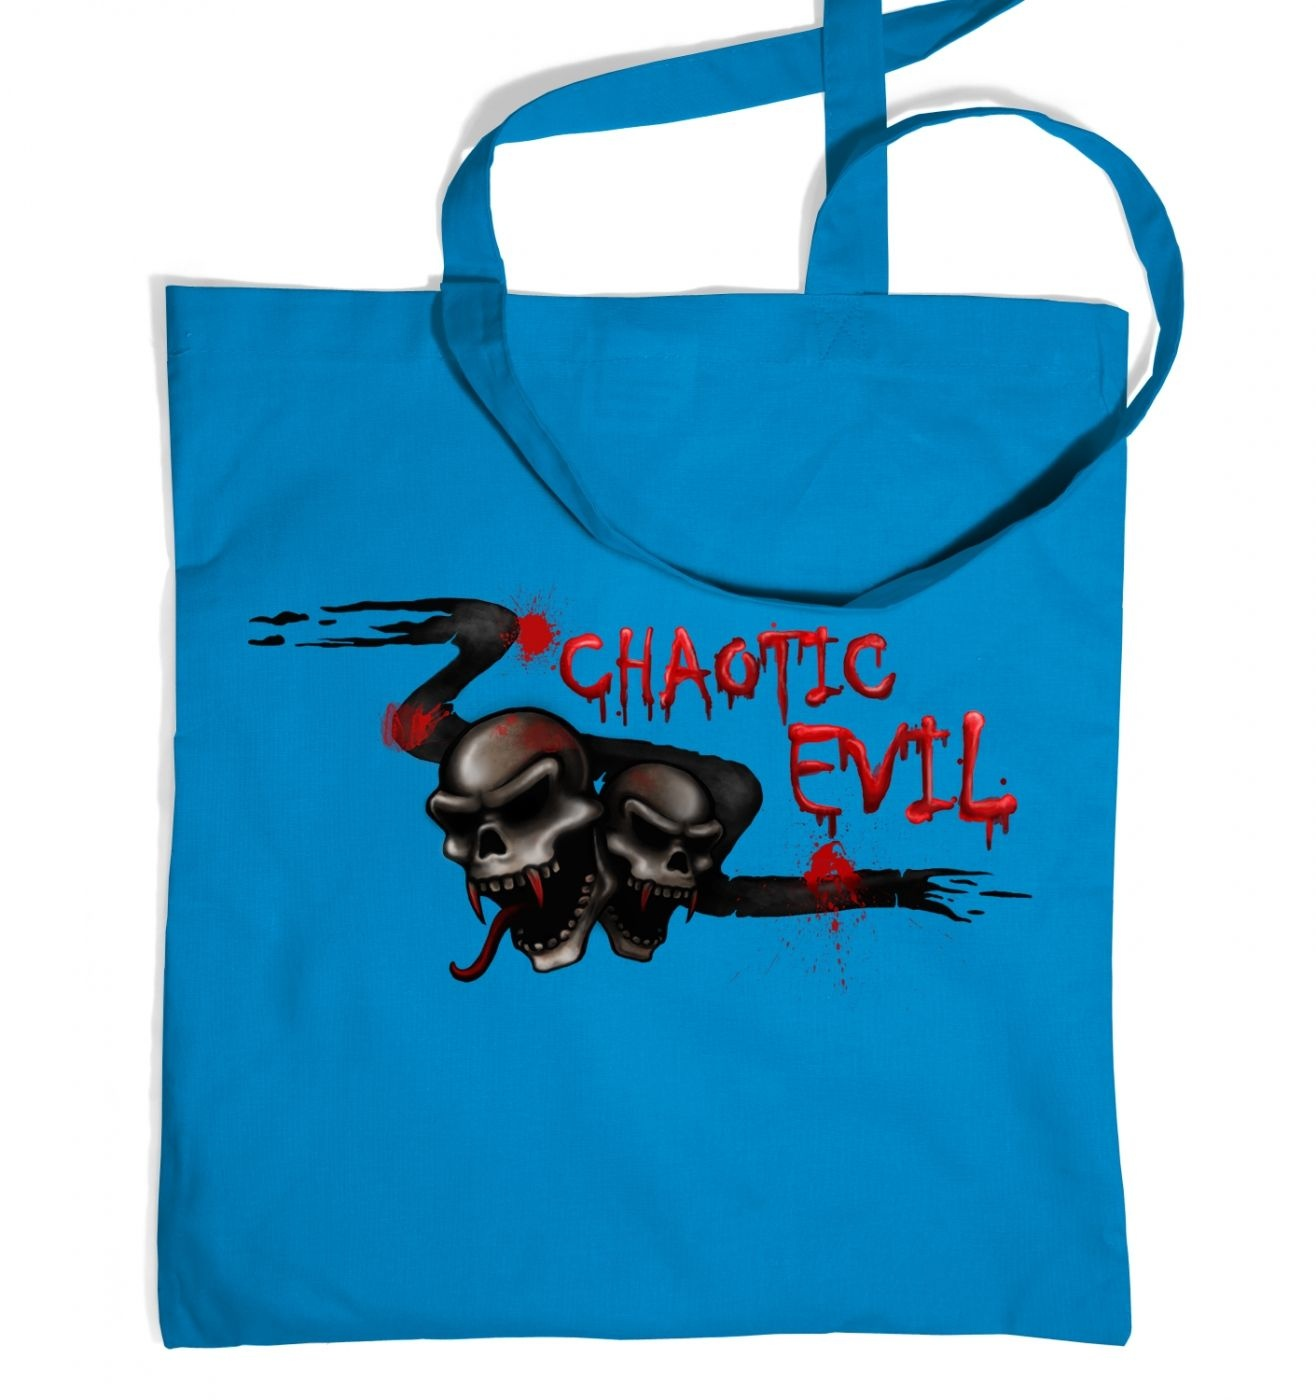 Chaotic Evil tote bag